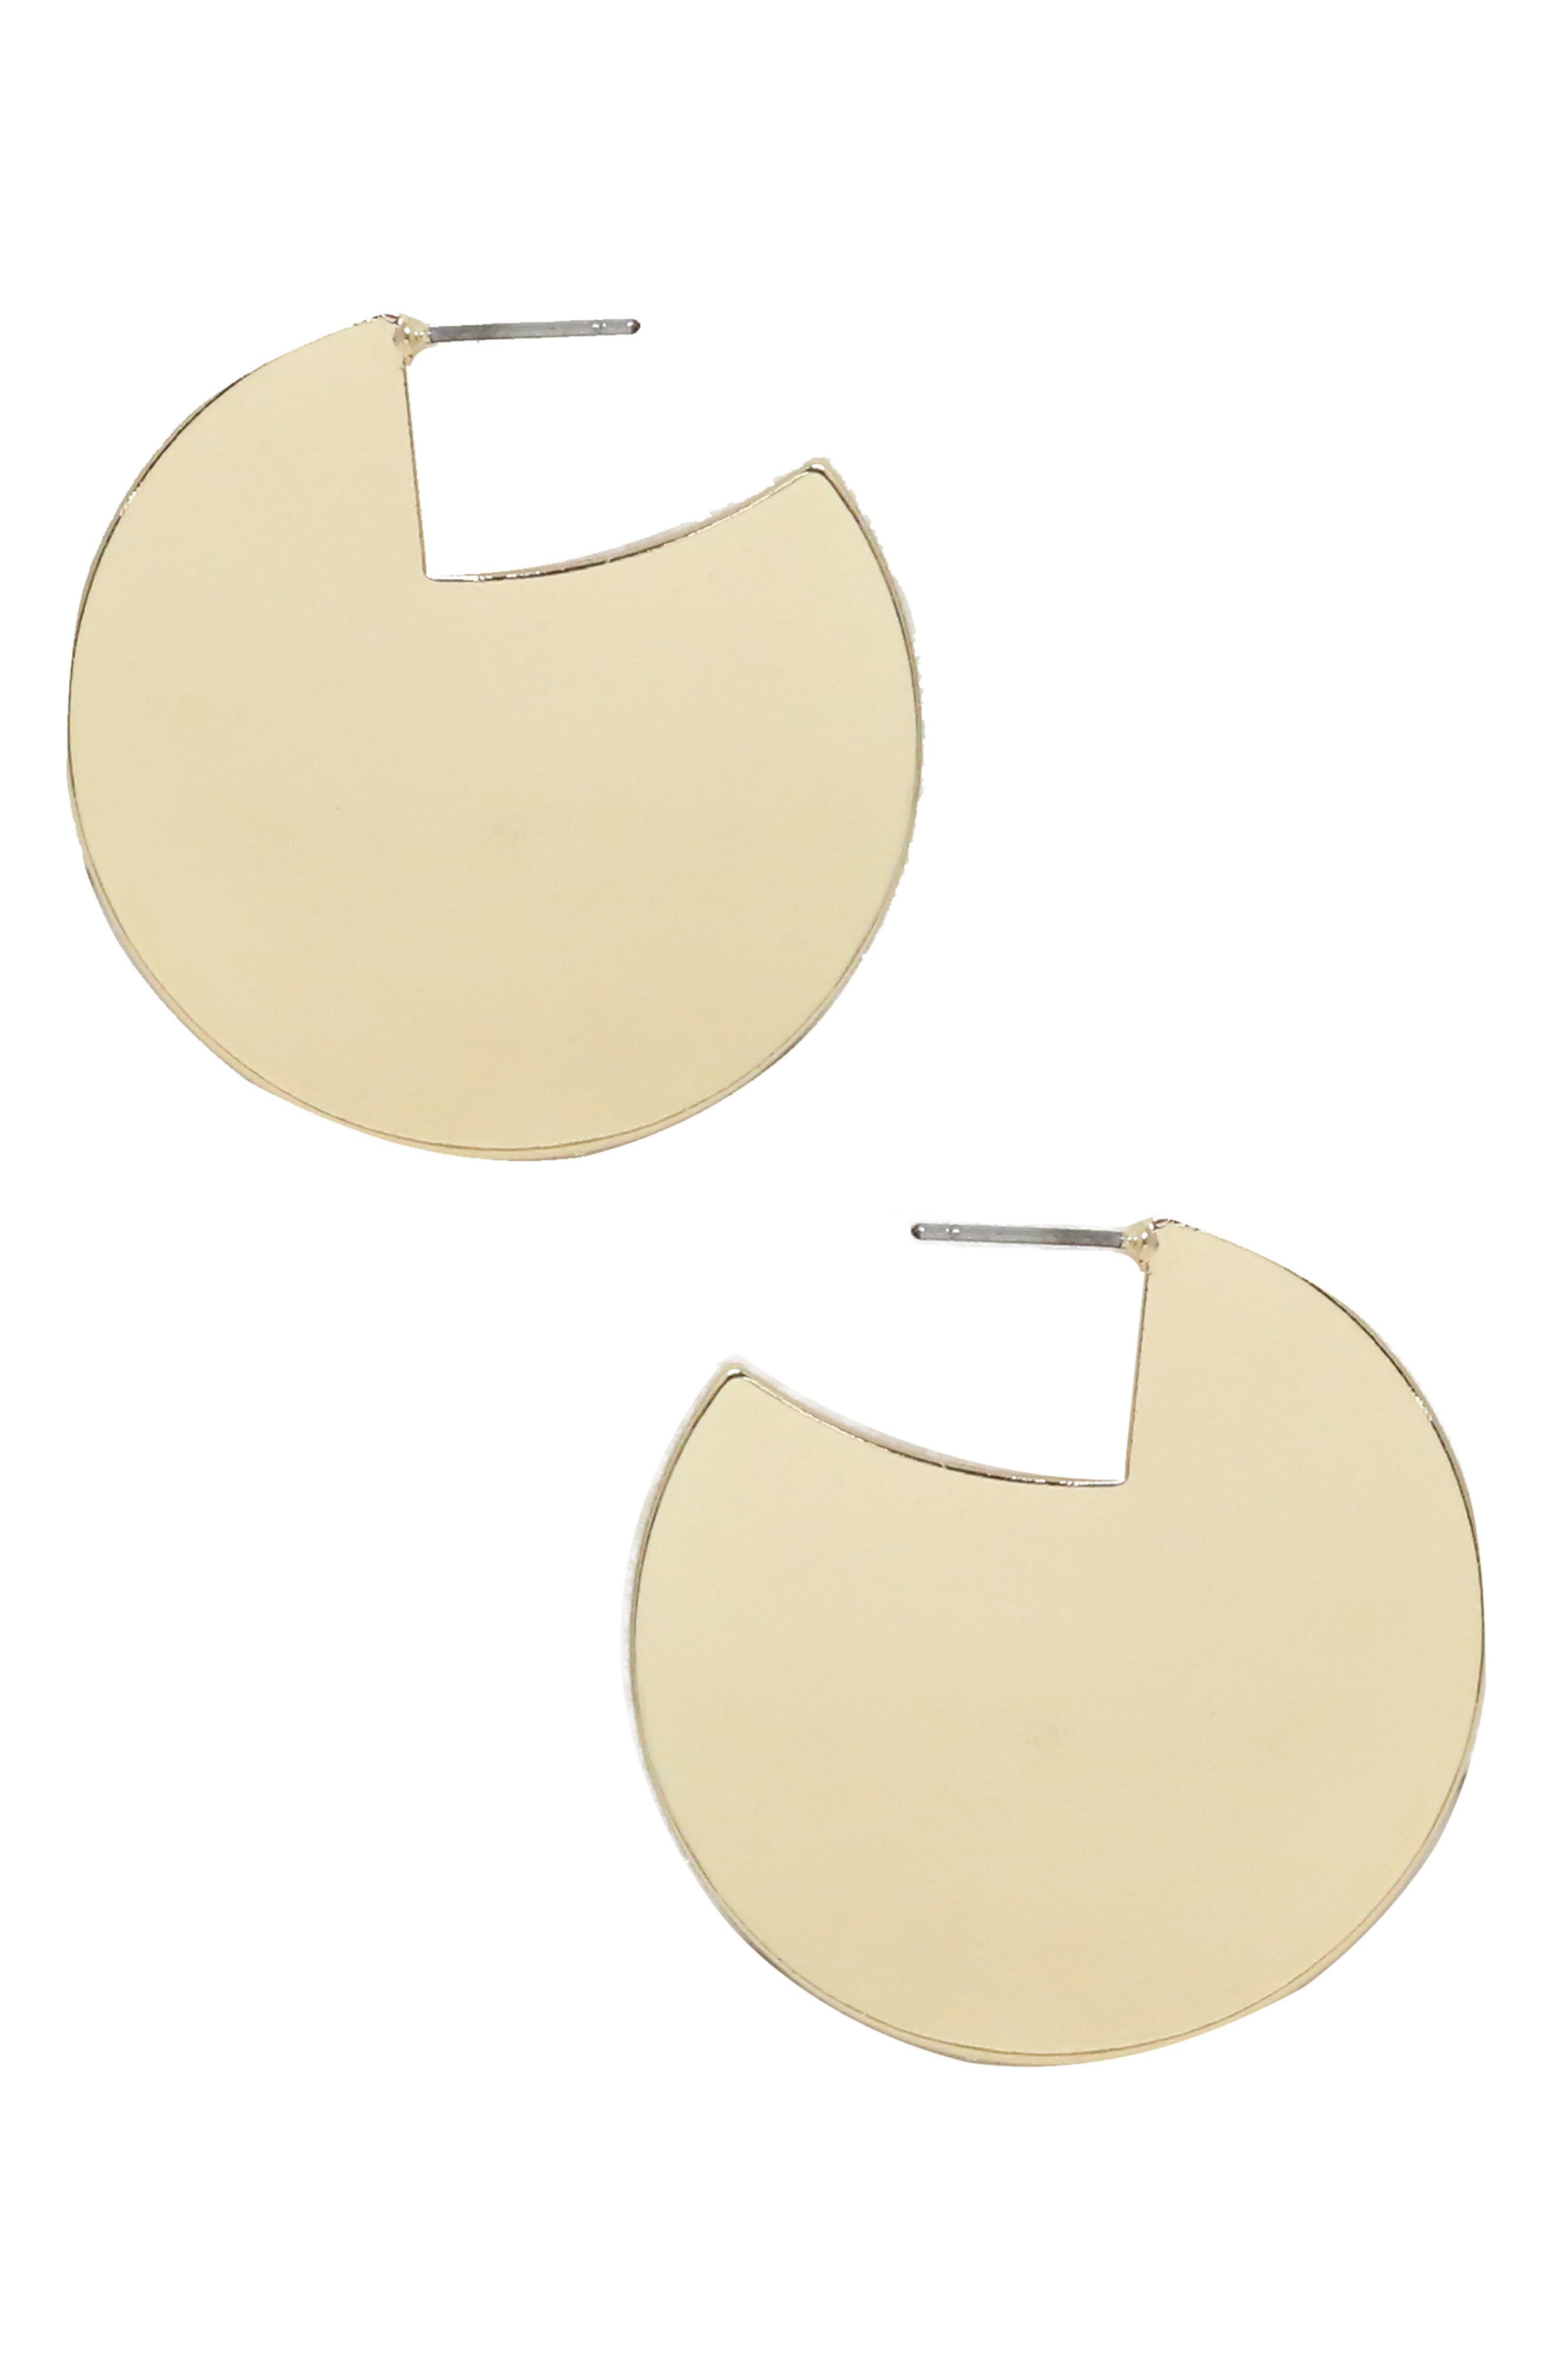 1960s Jewelry Styles and Trends to Wear Womens Ettika Mod Disc Earrings $35.00 AT vintagedancer.com